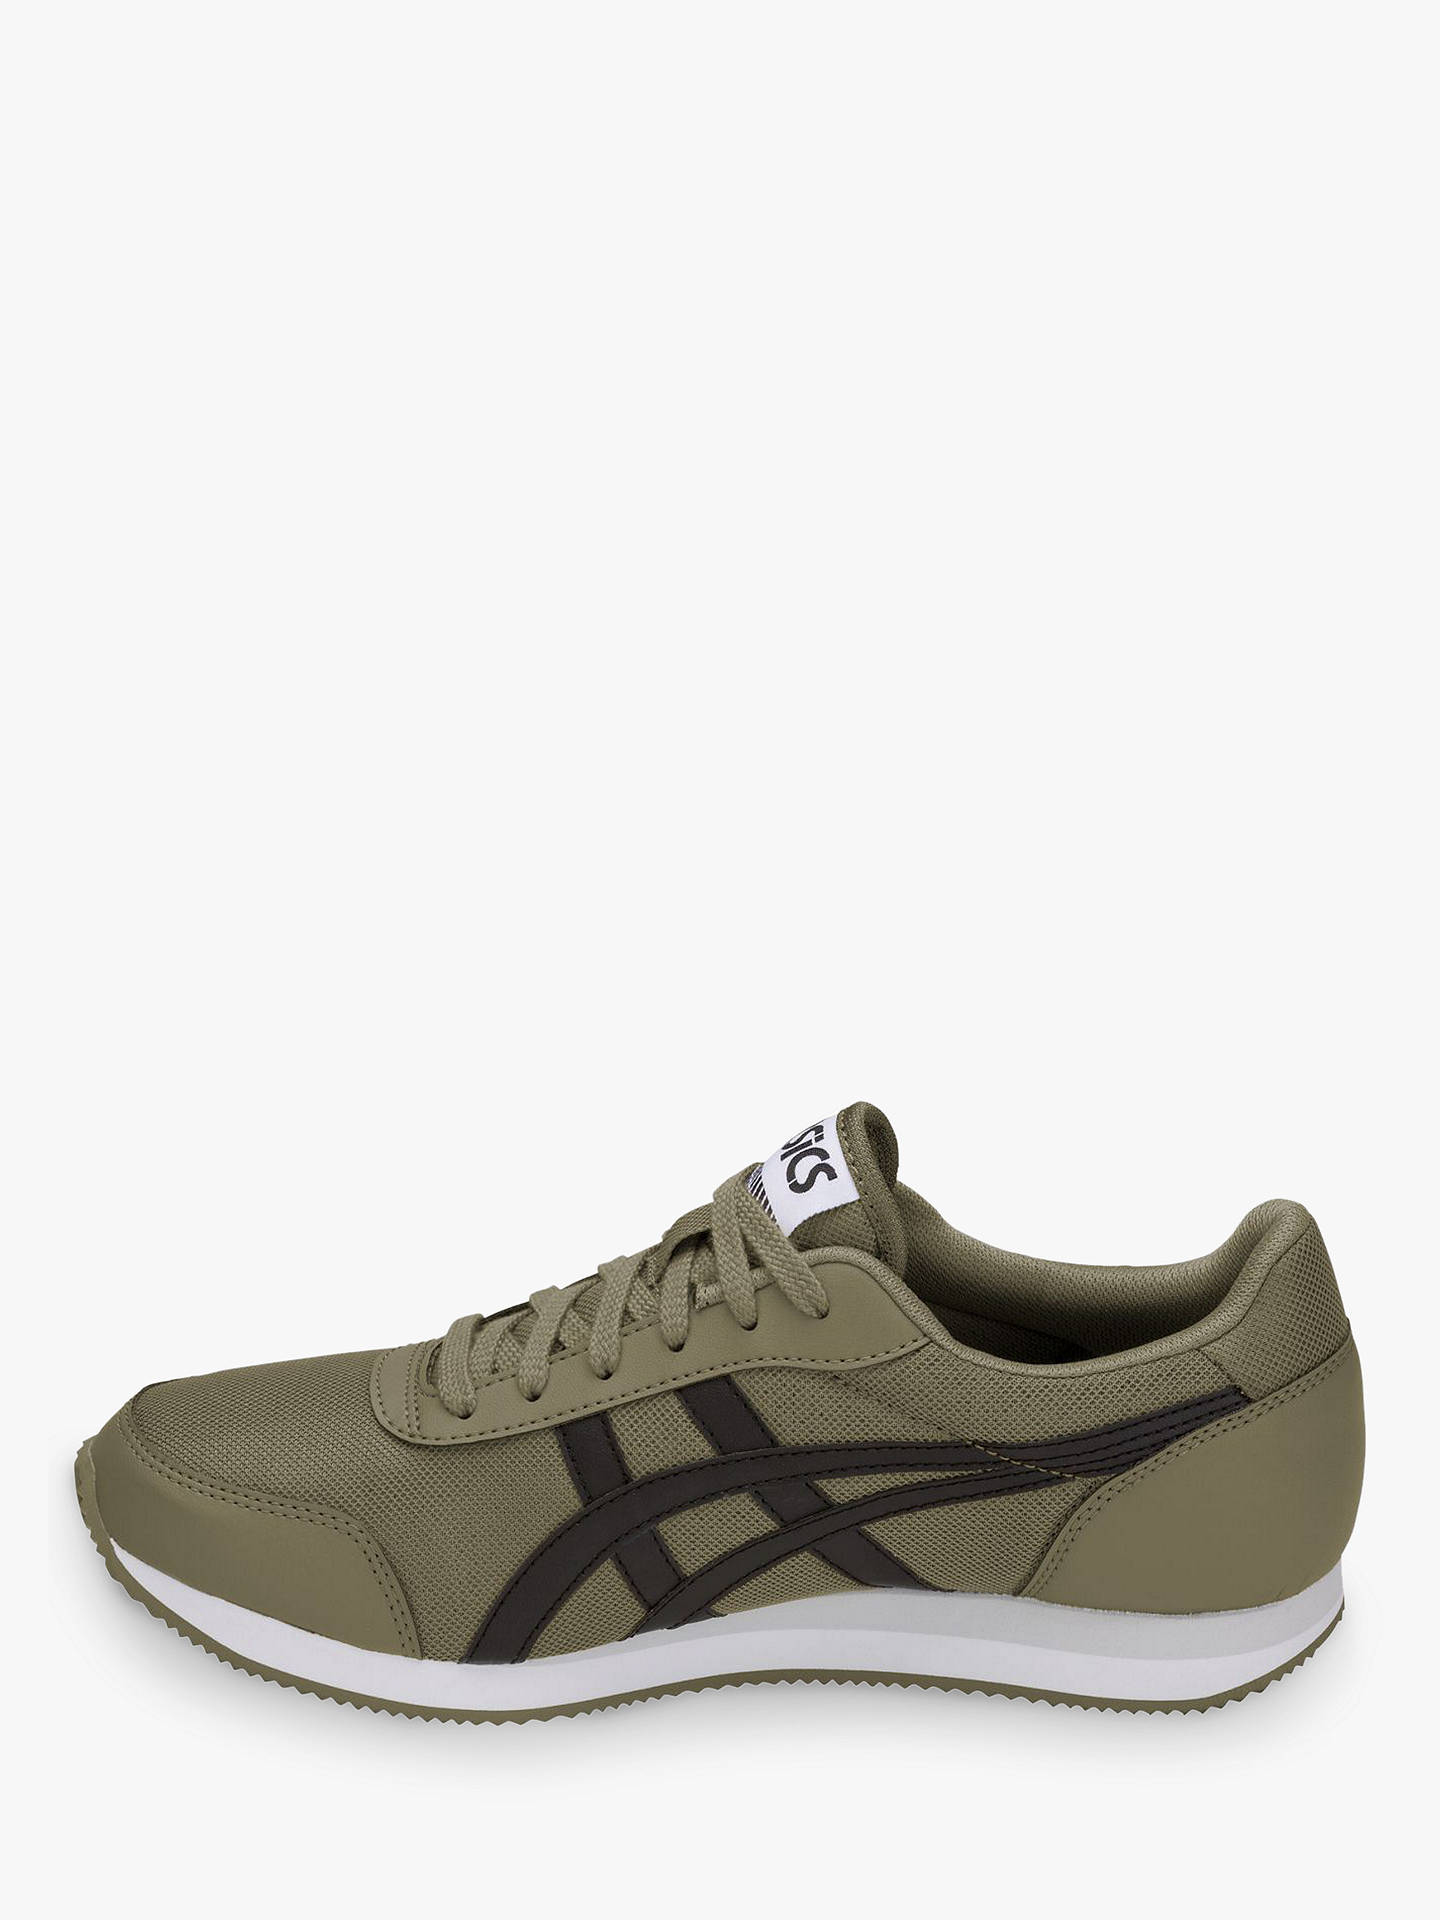 Buy ASICSTIGER Curreo II Trainers, Aloe/Black, 7 Online at johnlewis.com